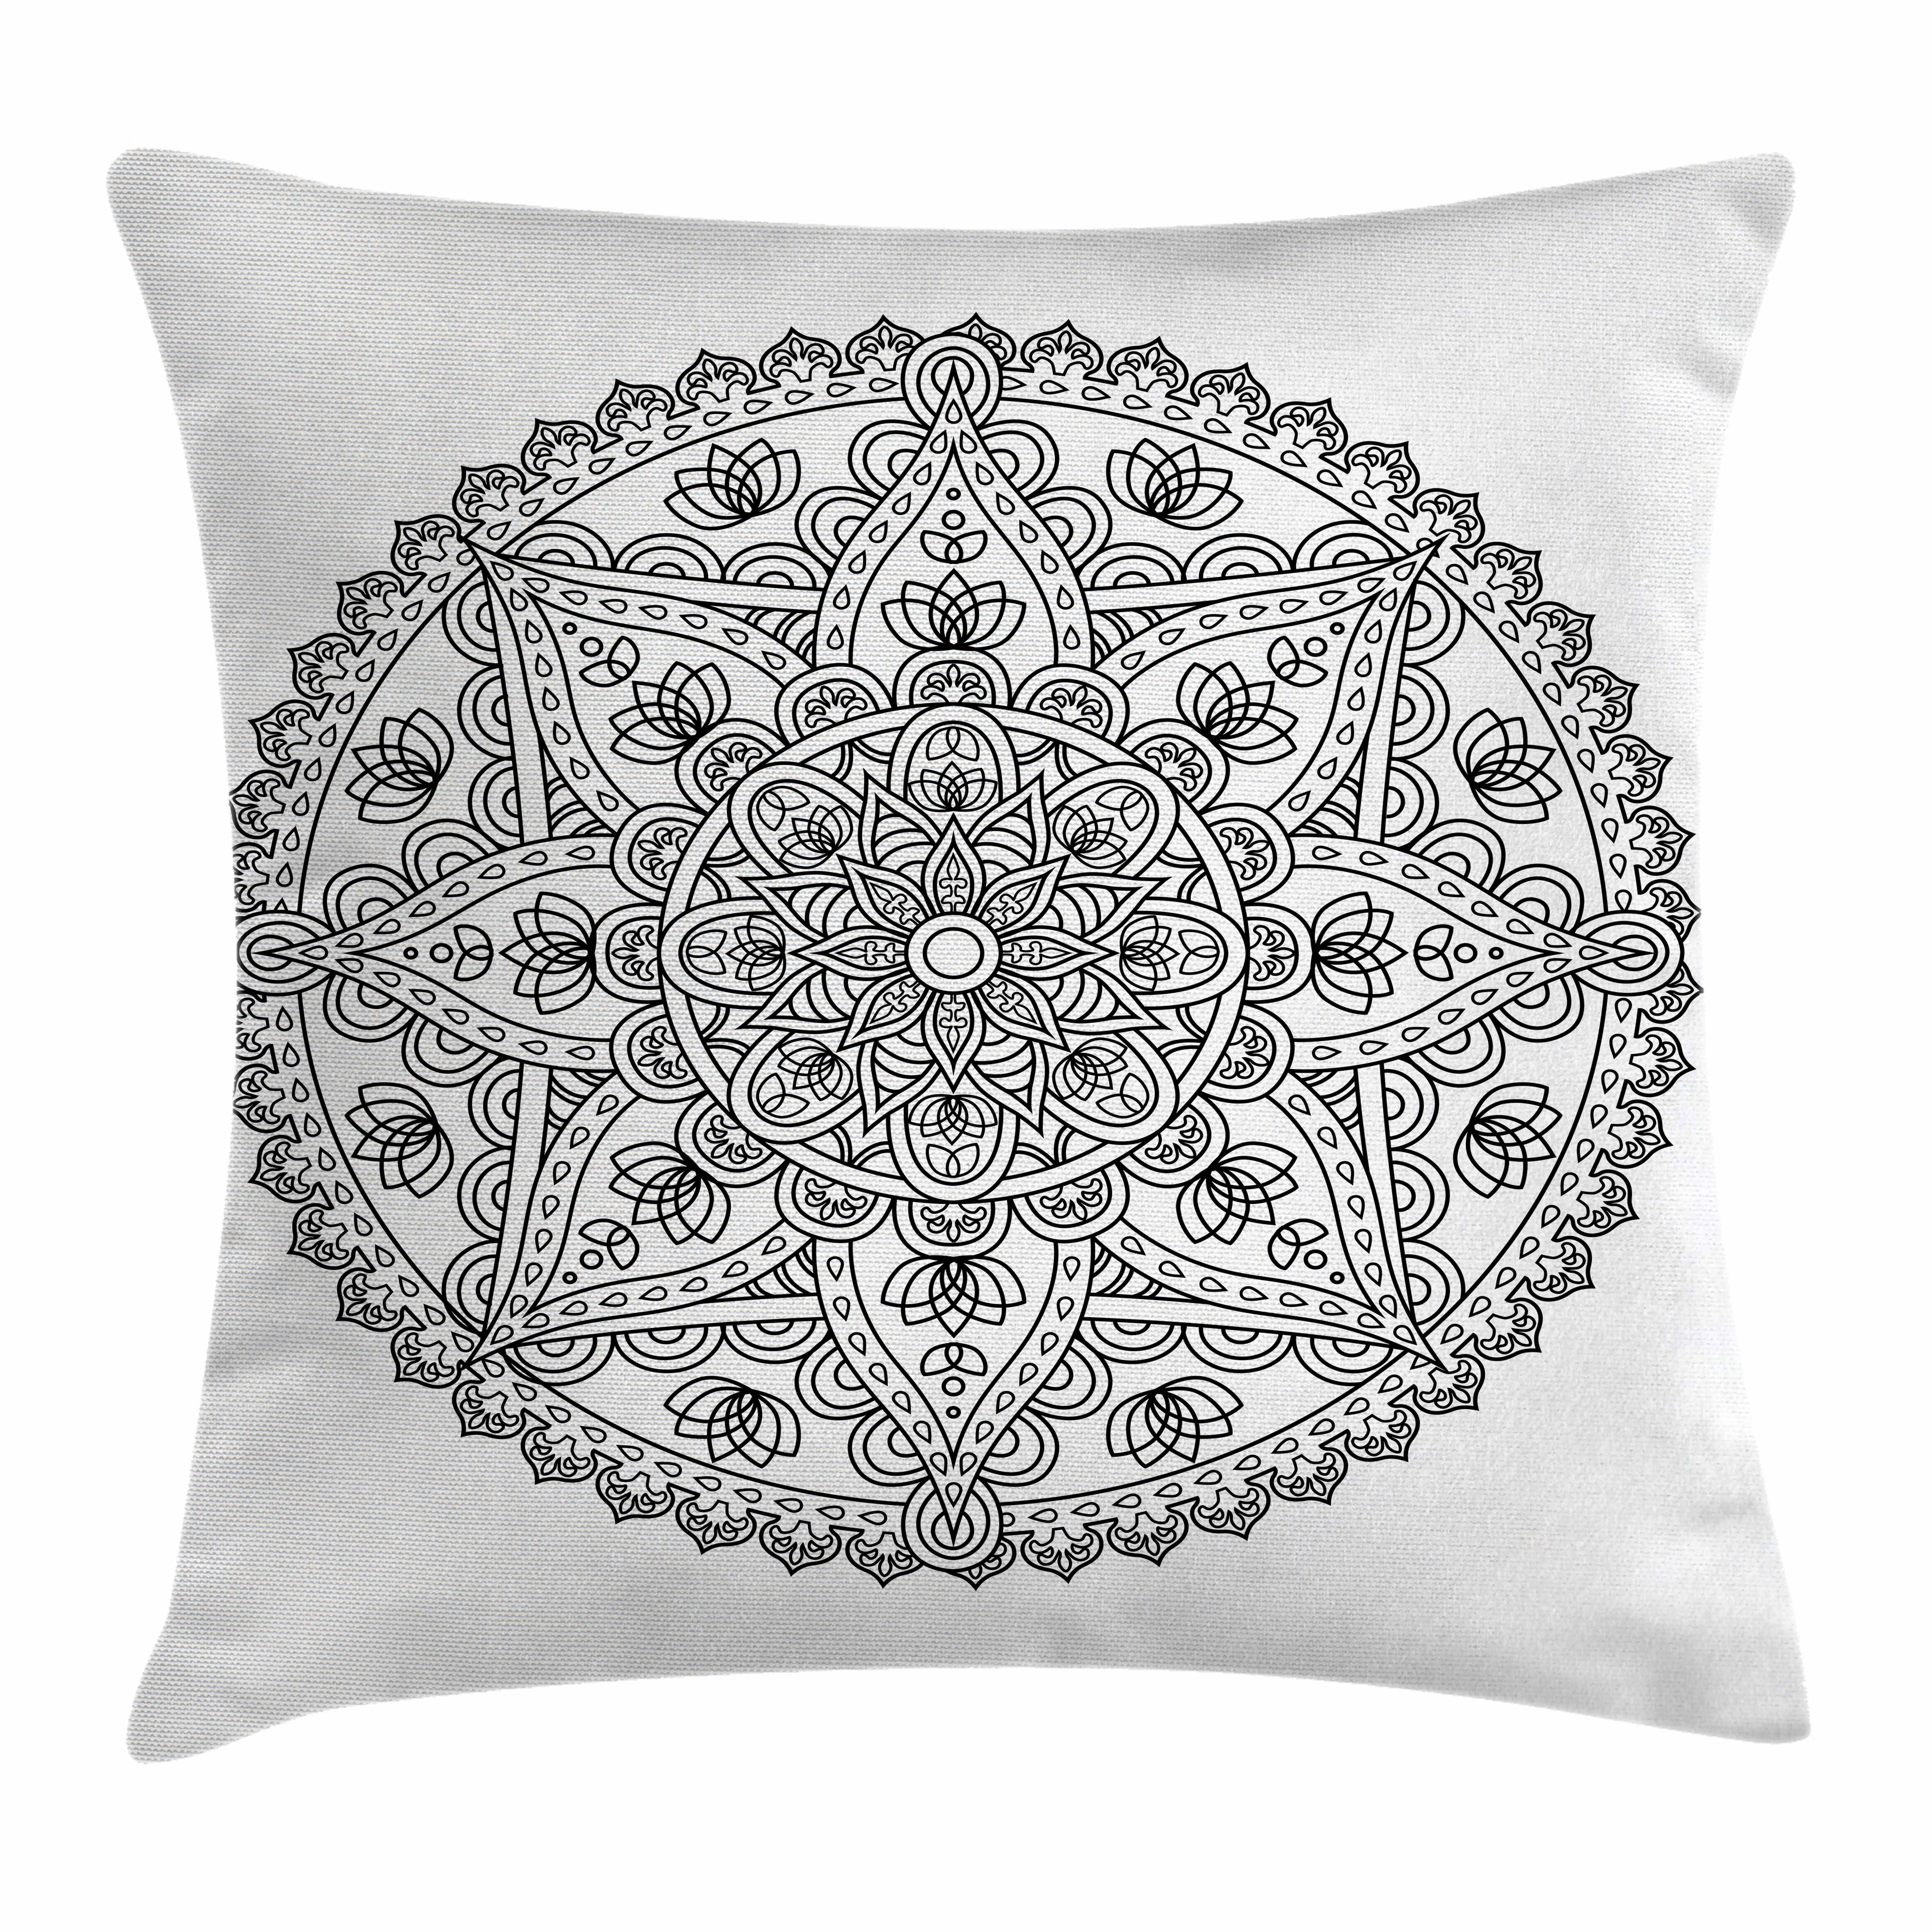 Lotus Throw Pillow Cushion Cover, Oriental Mandala Pattern Flower Petal Effect Islamic Style Monochrome Boho Design, Decorative Square Accent Pillow Case, 16 X 16 Inches, Grey White, by Ambesonne